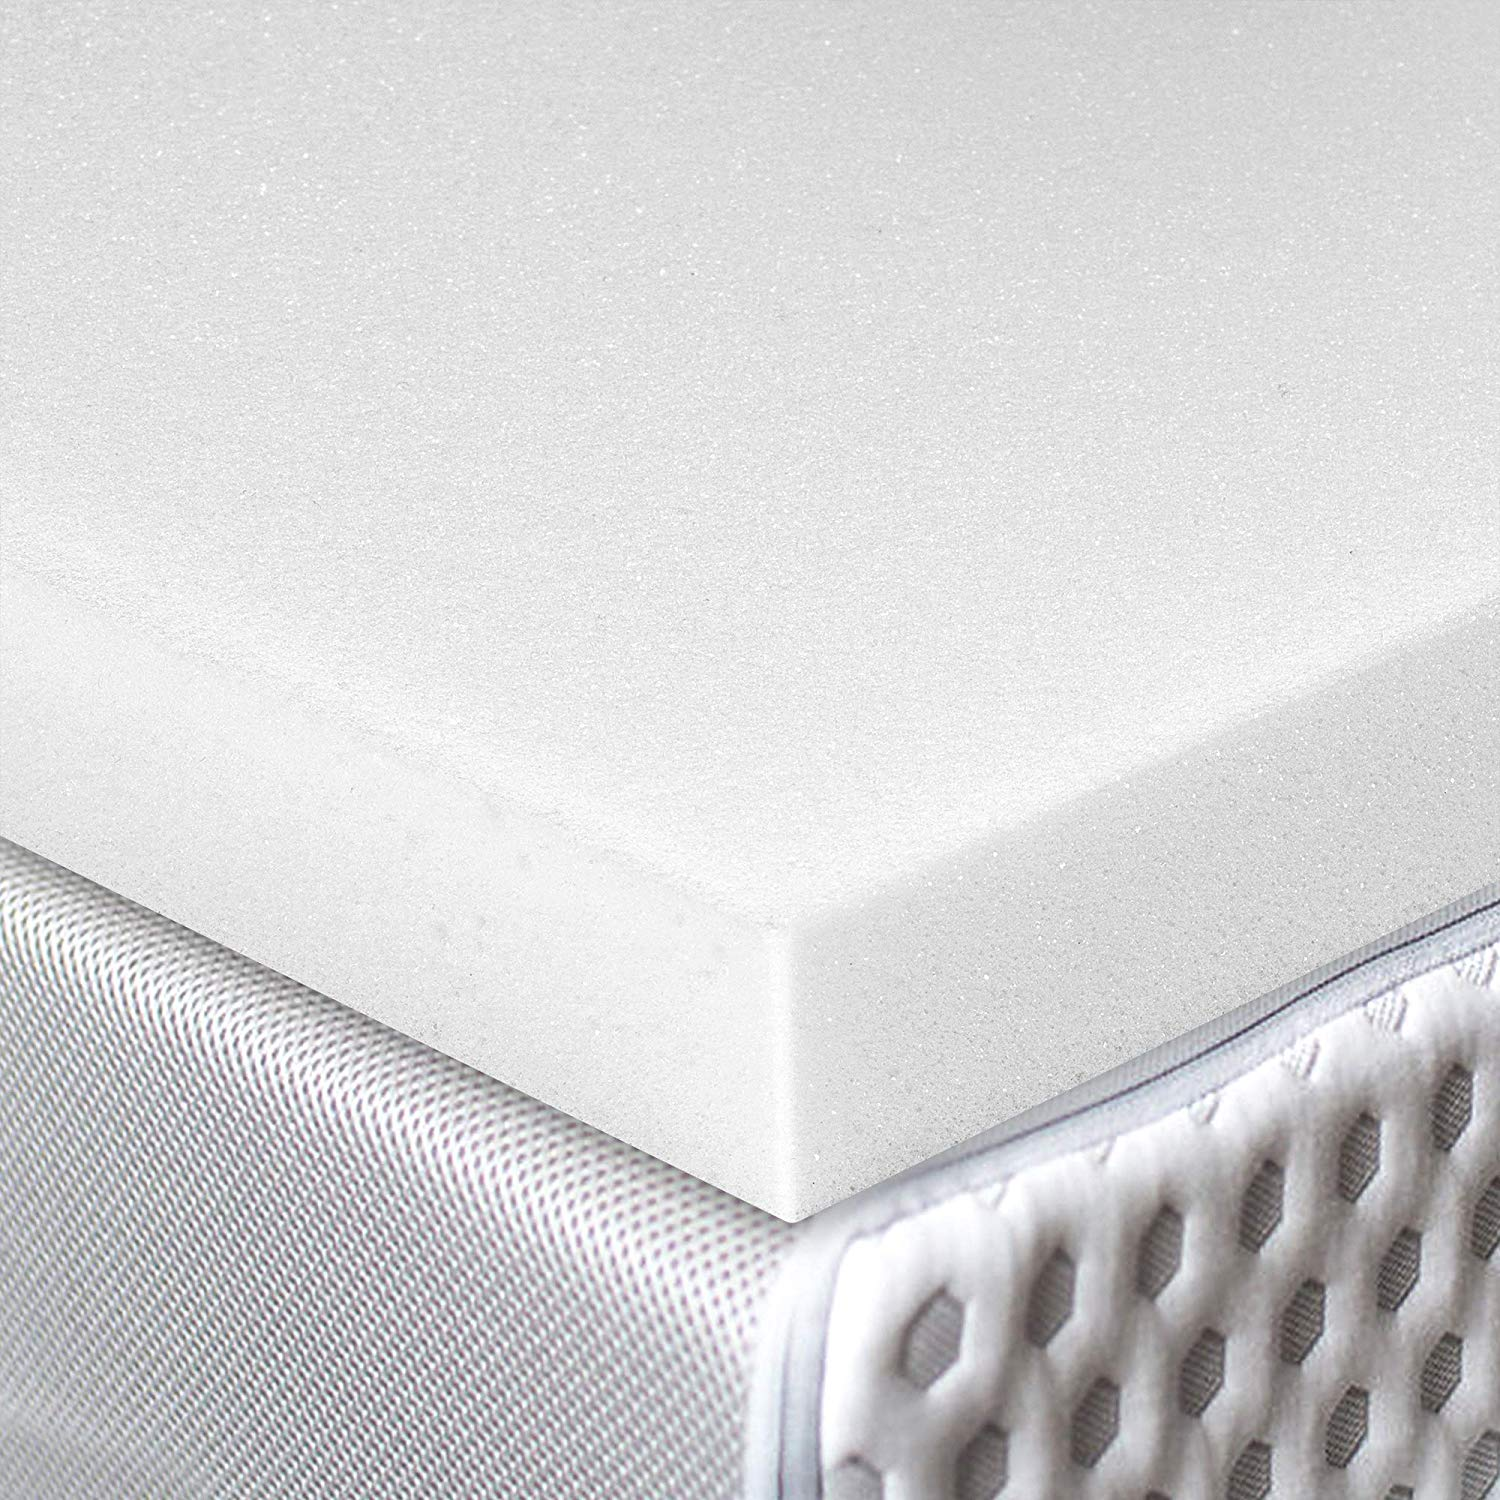 Red Nomad Best Mattress Topper review by www.dailysleep.org